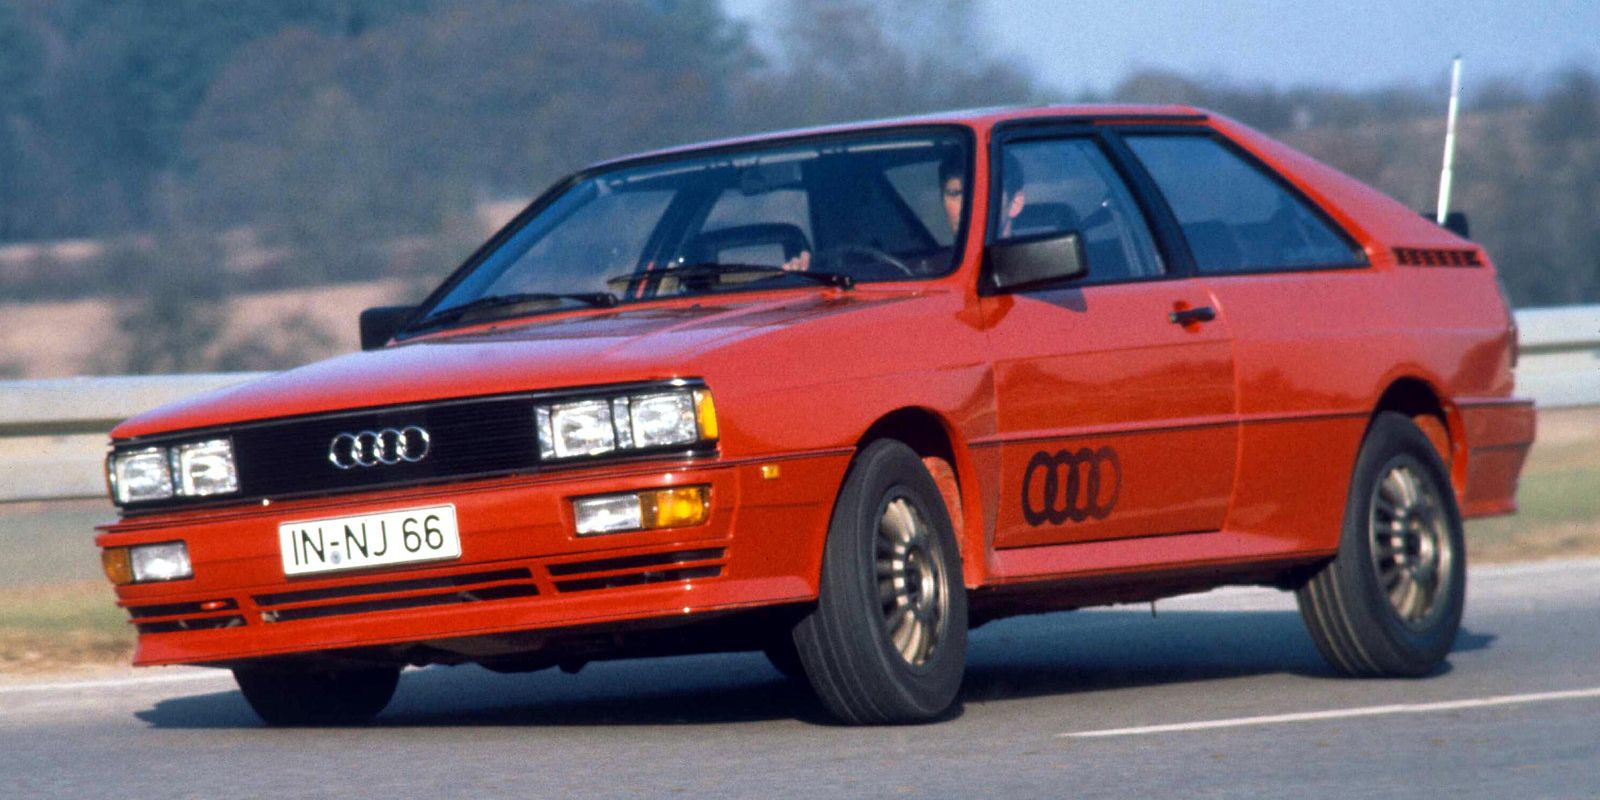 """<p>When the Audi Quattro went on sale, all-wheel-drive performance cars weren't nearly as common as they are now. But it had <a href=""""http://www.roadandtrack.com/car-culture/classic-cars/videos/a6621/audi-quattro-tarmac-rally-killer-sounds-video/"""" target=""""_blank"""">the DNA of a WRC-dominating rally car</a>, and it's now cemented itself as one of the most important cars Audi's ever sold.</p>"""